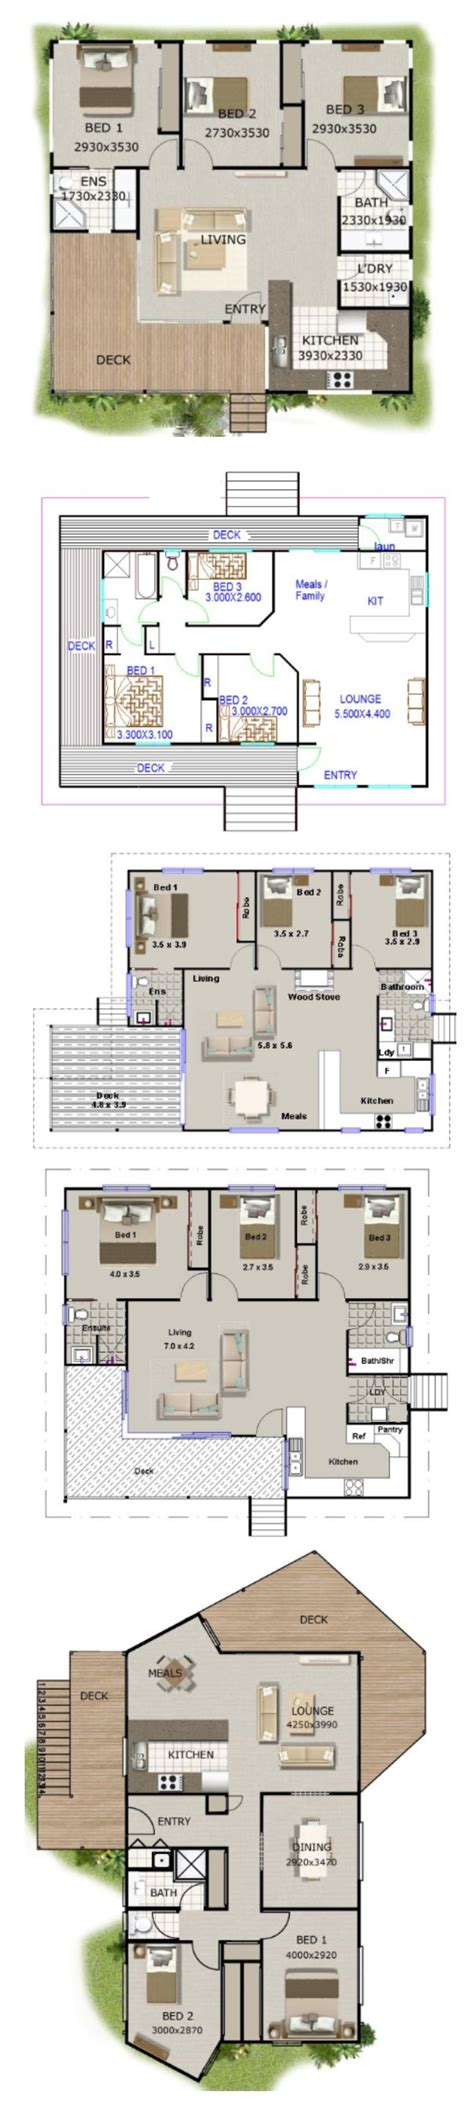 floor plans for adding onto a house in law apartment addition plans images 100 accessible handicapped kitchen design